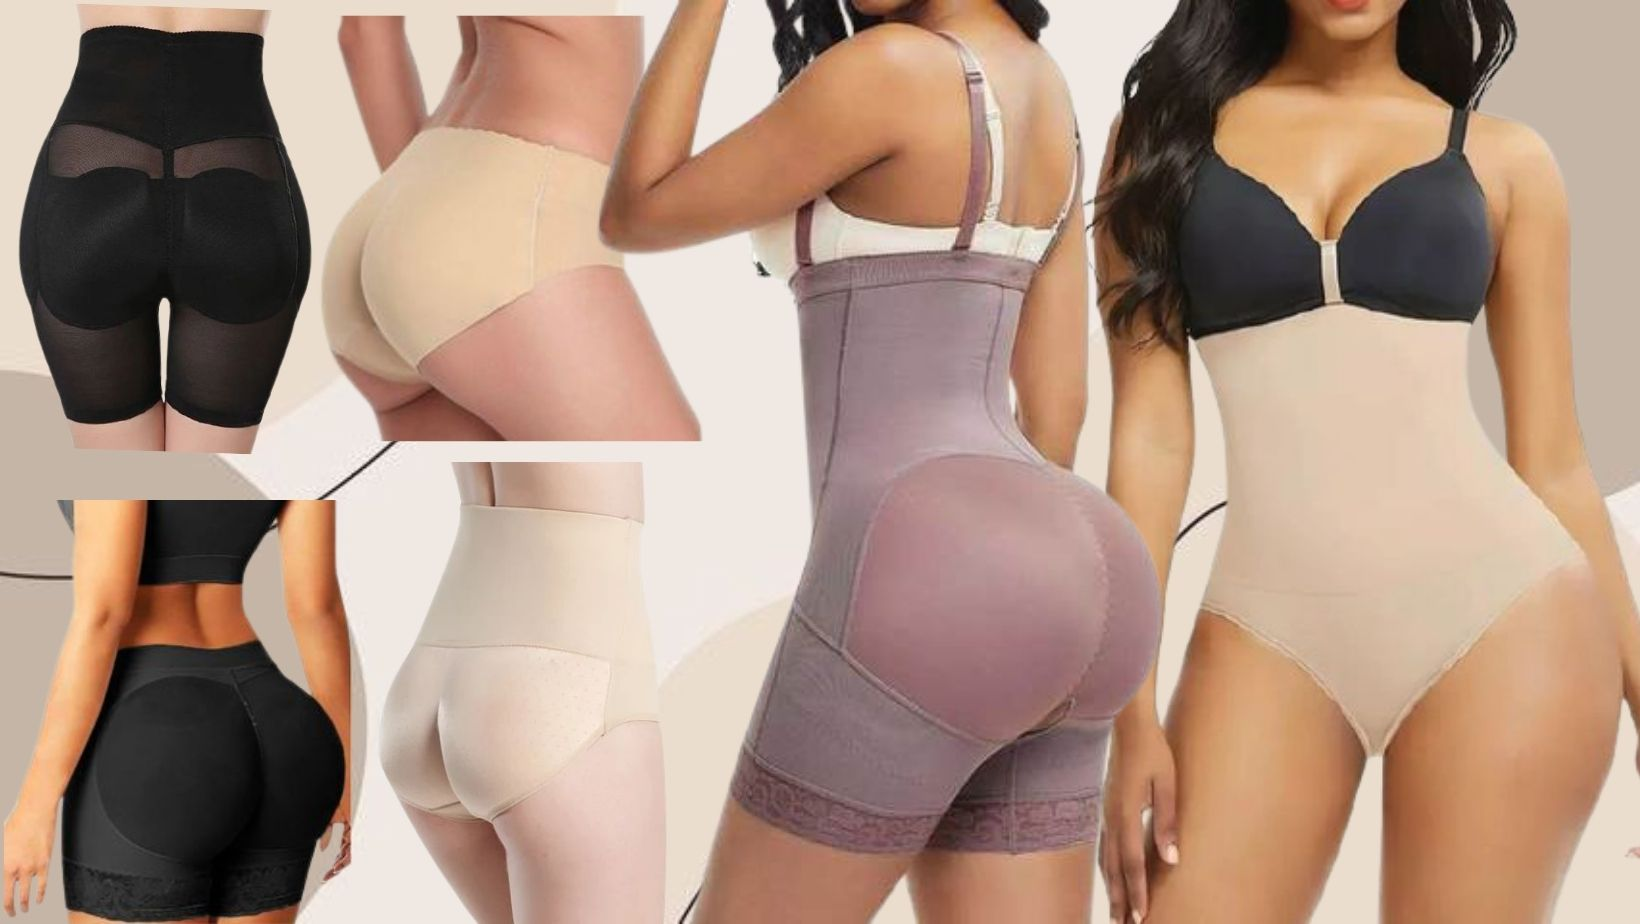 Comfortable but and hip enchancing shapewear shorts for women